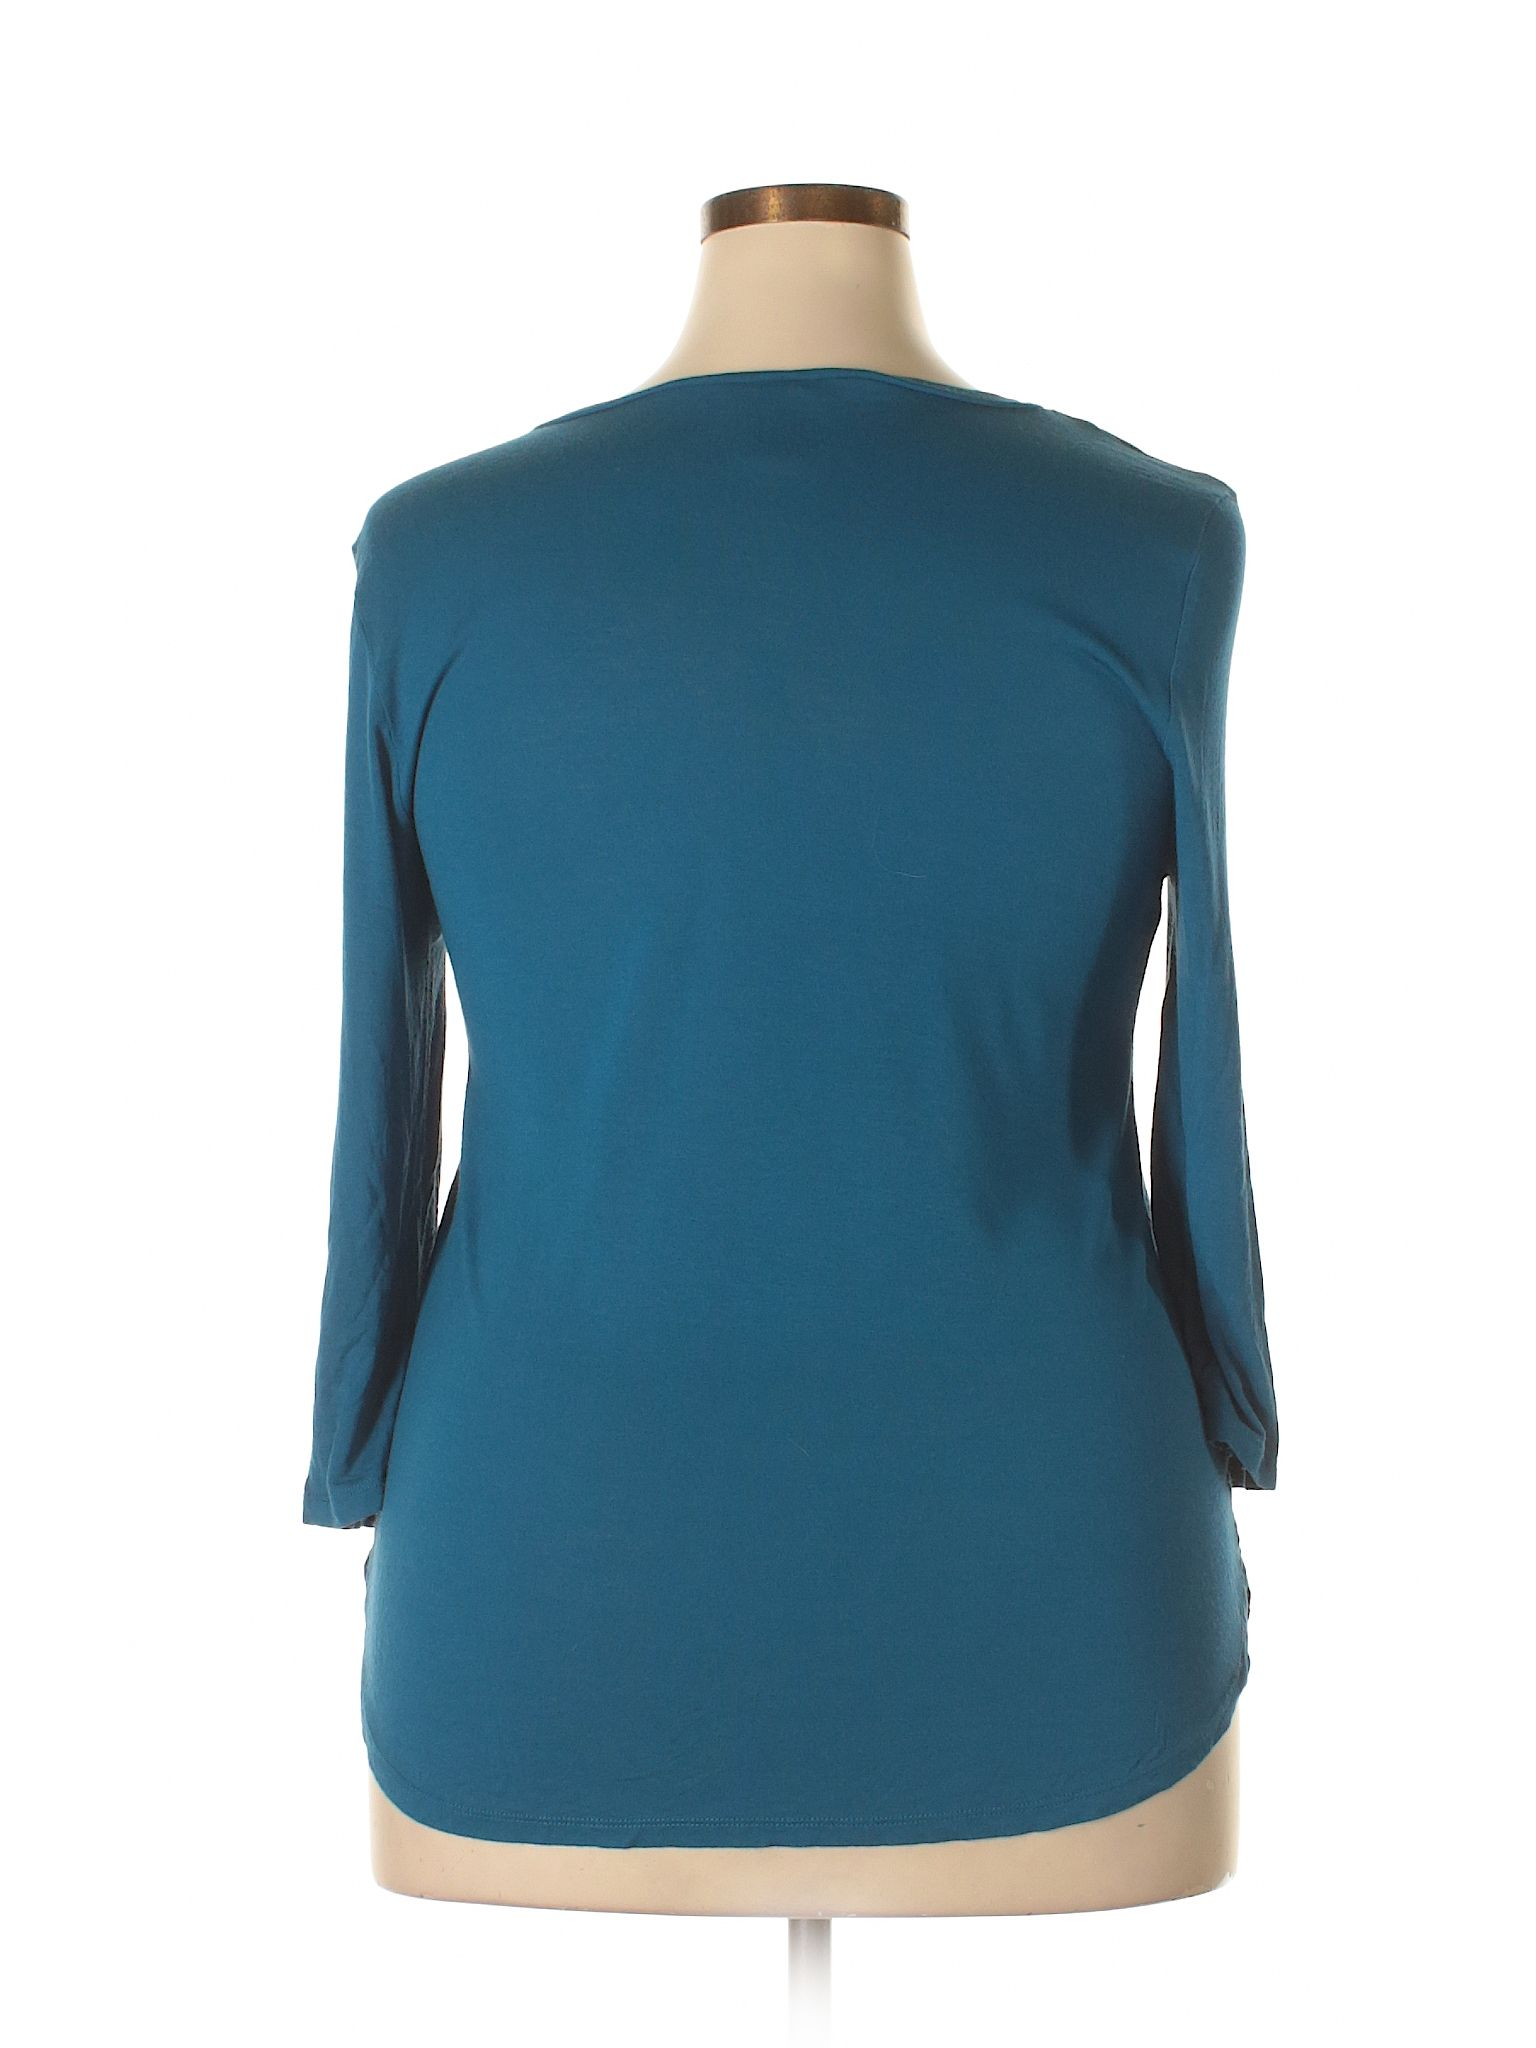 Ann Taylor Factory 34 Sleeve Top Size 1200 Navy Blue